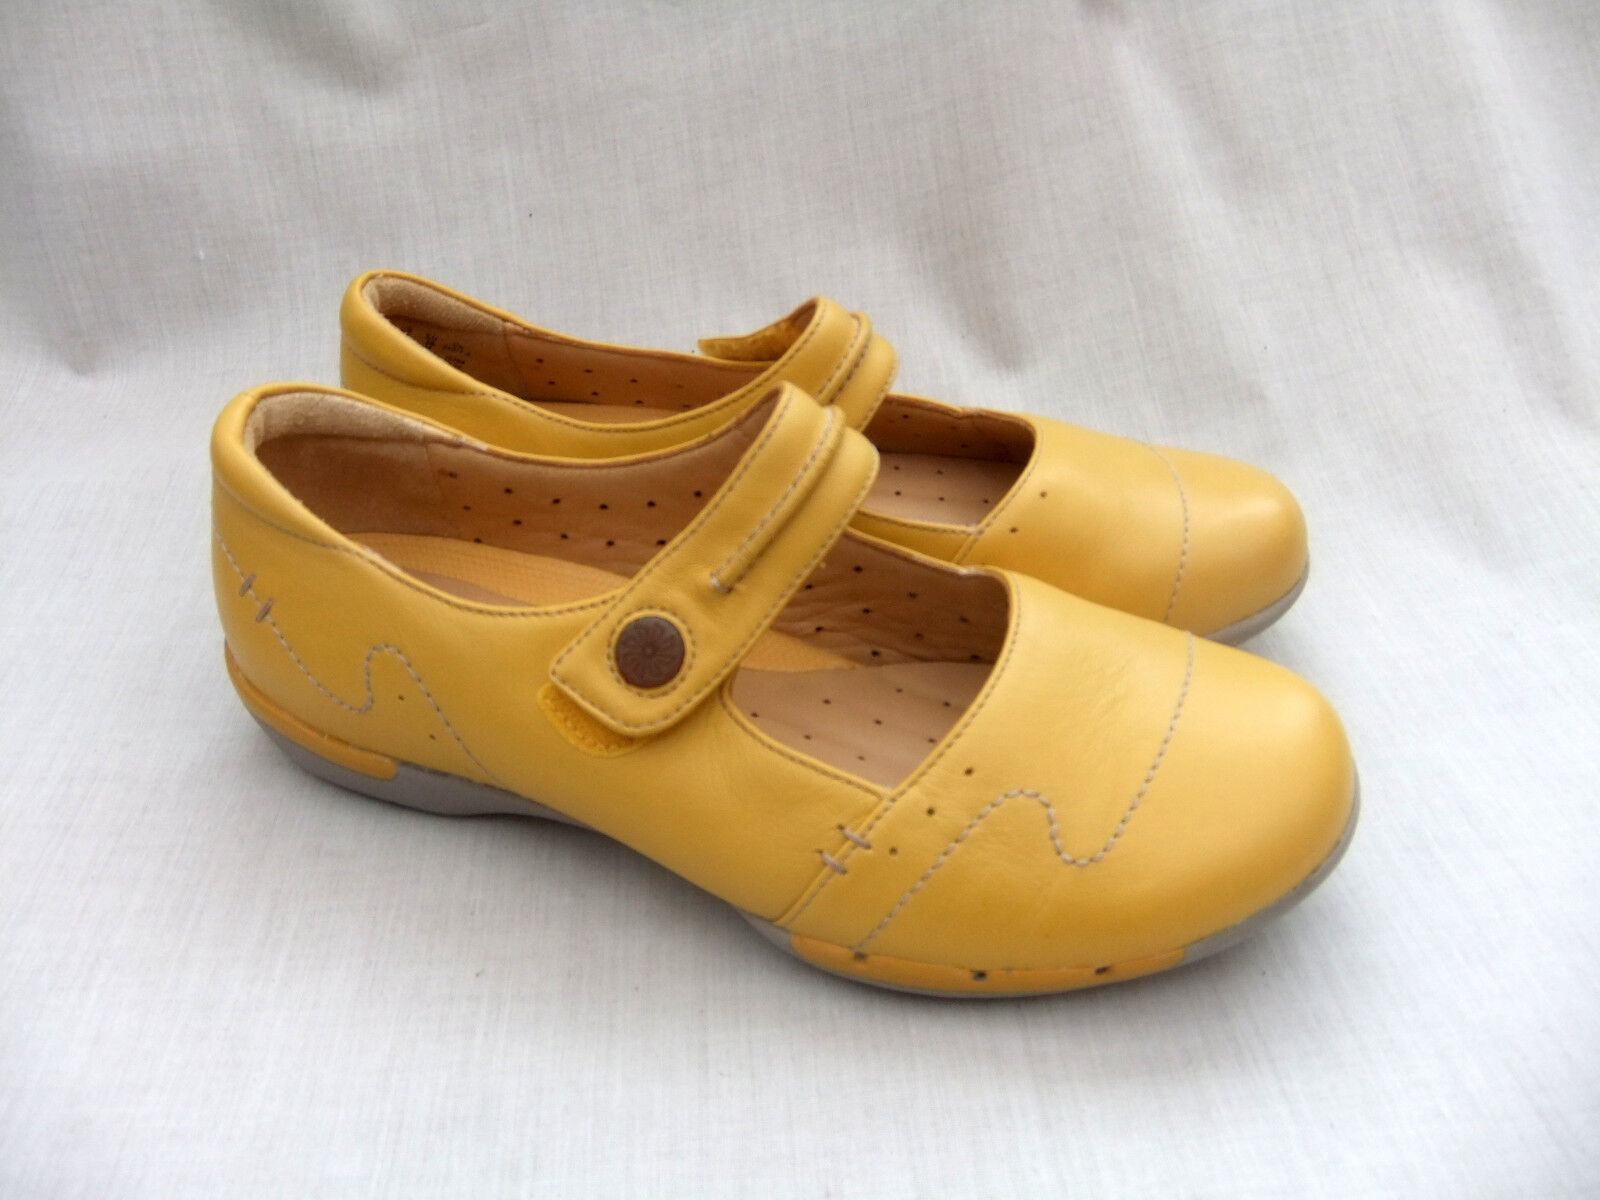 NEW CLARKS UNSTRUCTUROT UN HELMA YELLOW LEATHER Schuhe SIZE 4.5 / 37.5